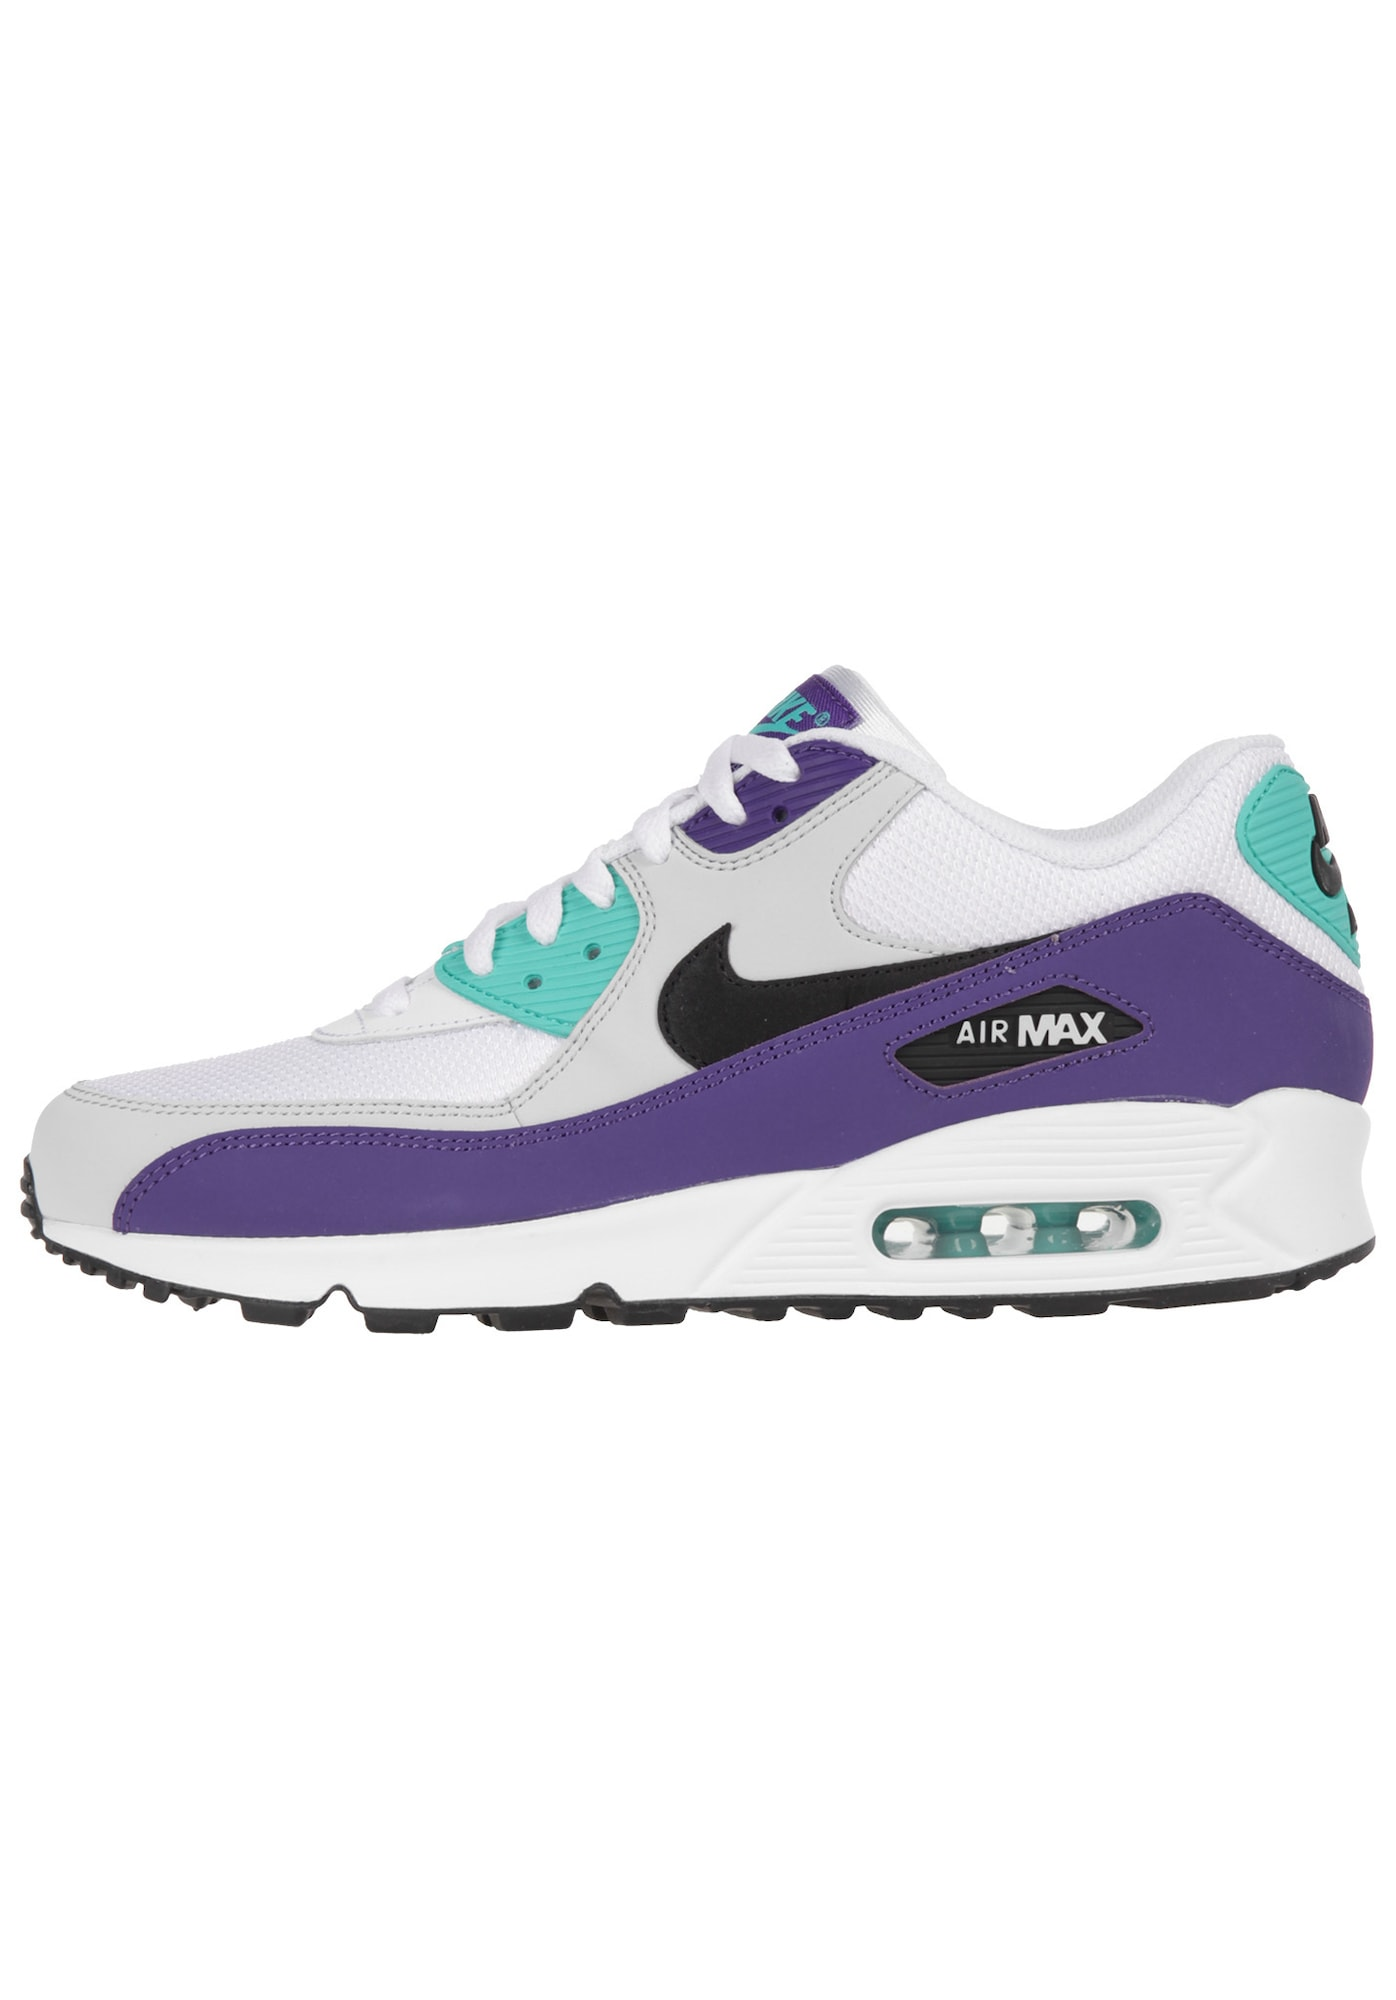 Nike Sportswear, Heren Sneakers laag 'Air Max 90 Essential', turquoise / mauve / zwart / wit